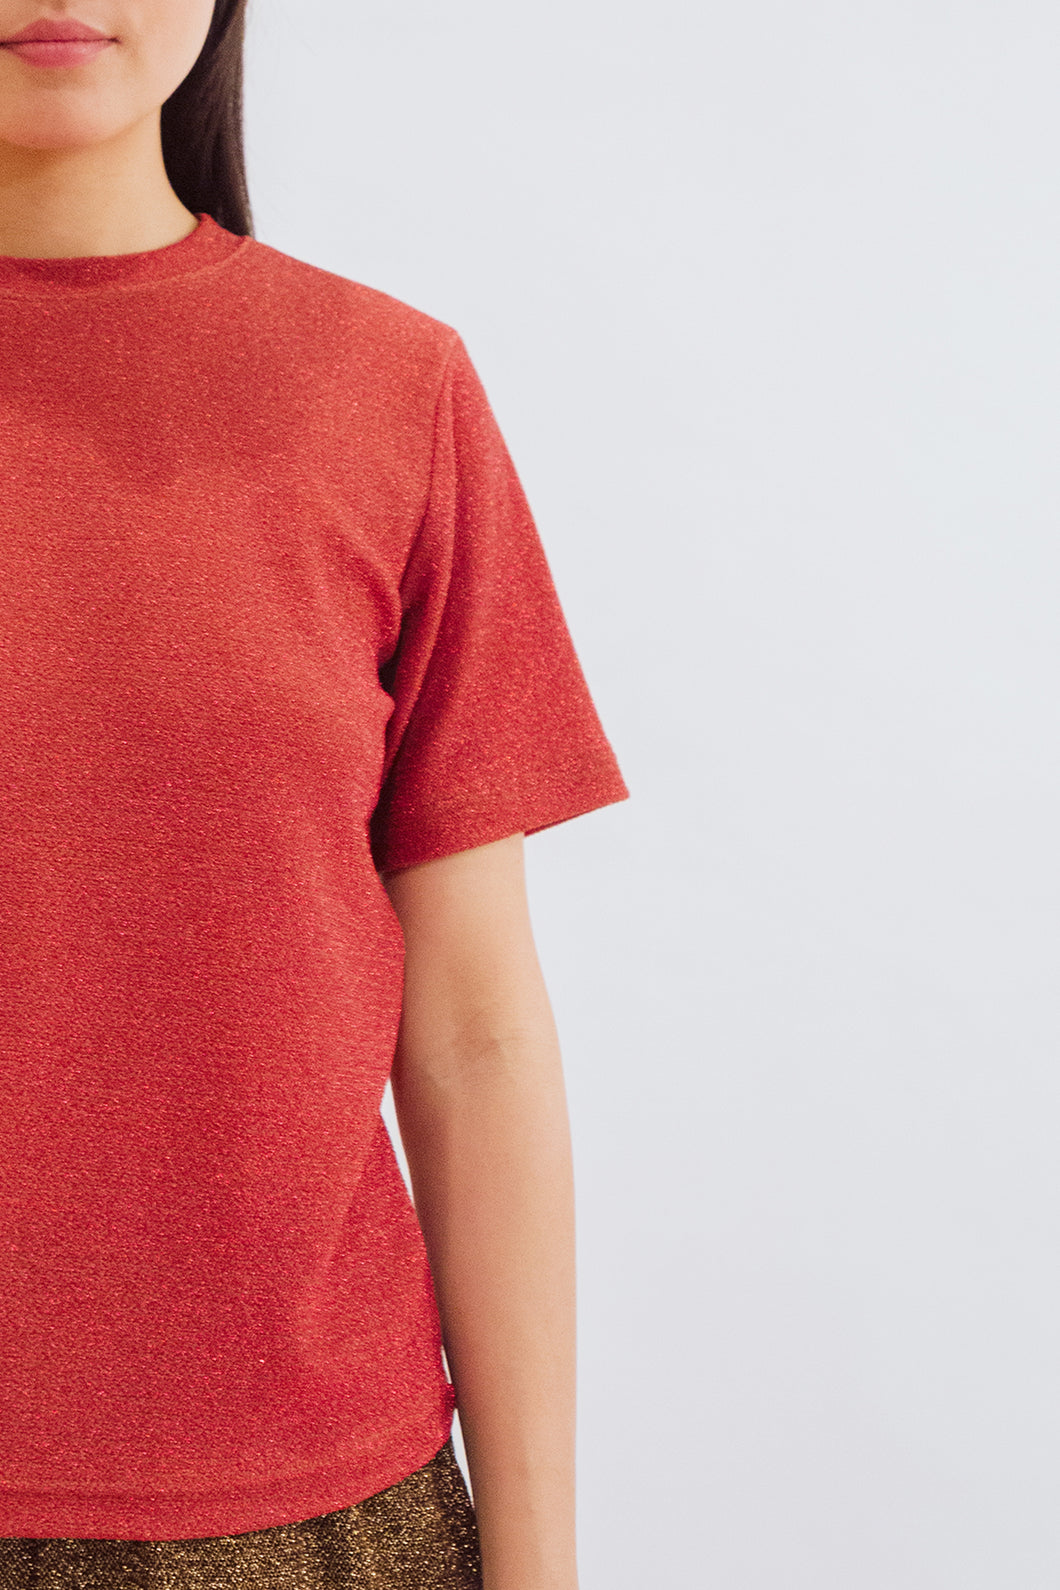 Meiko T-shirt Blood Orange